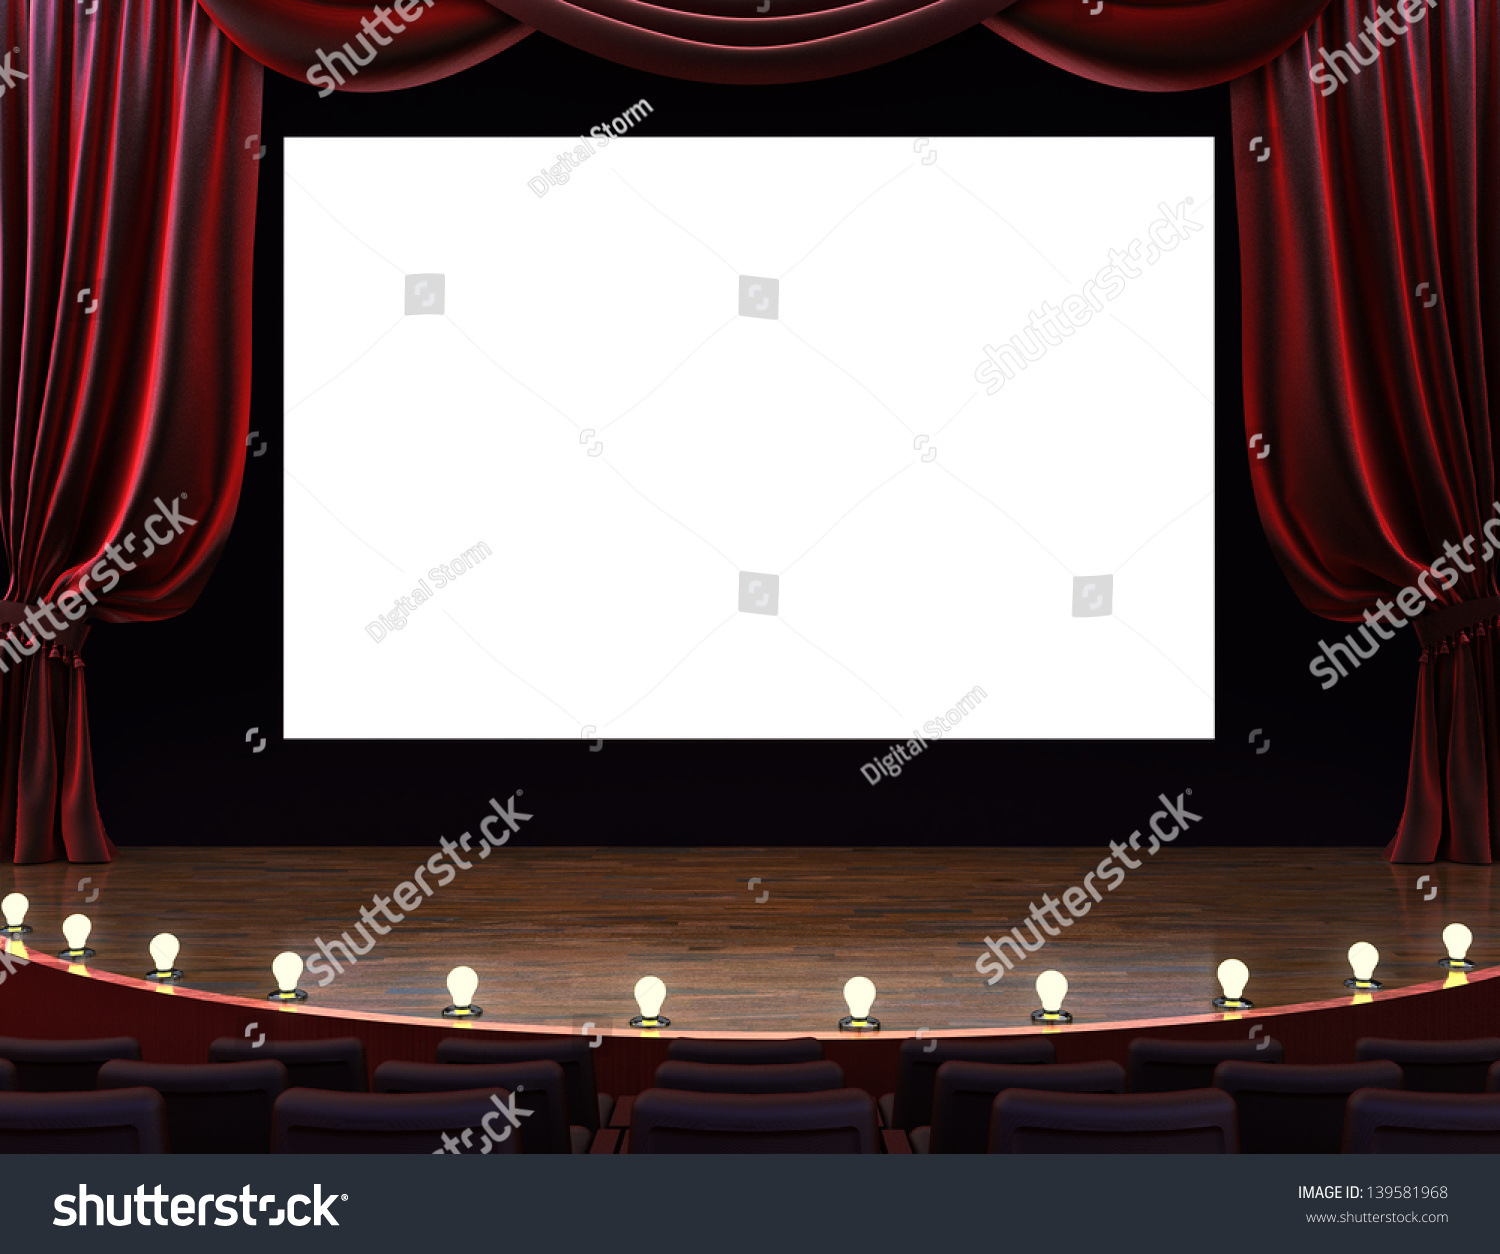 Real theater curtains - Cinema Movie Theater With Curtains Screen Seats And Lighted Stage Room For Text